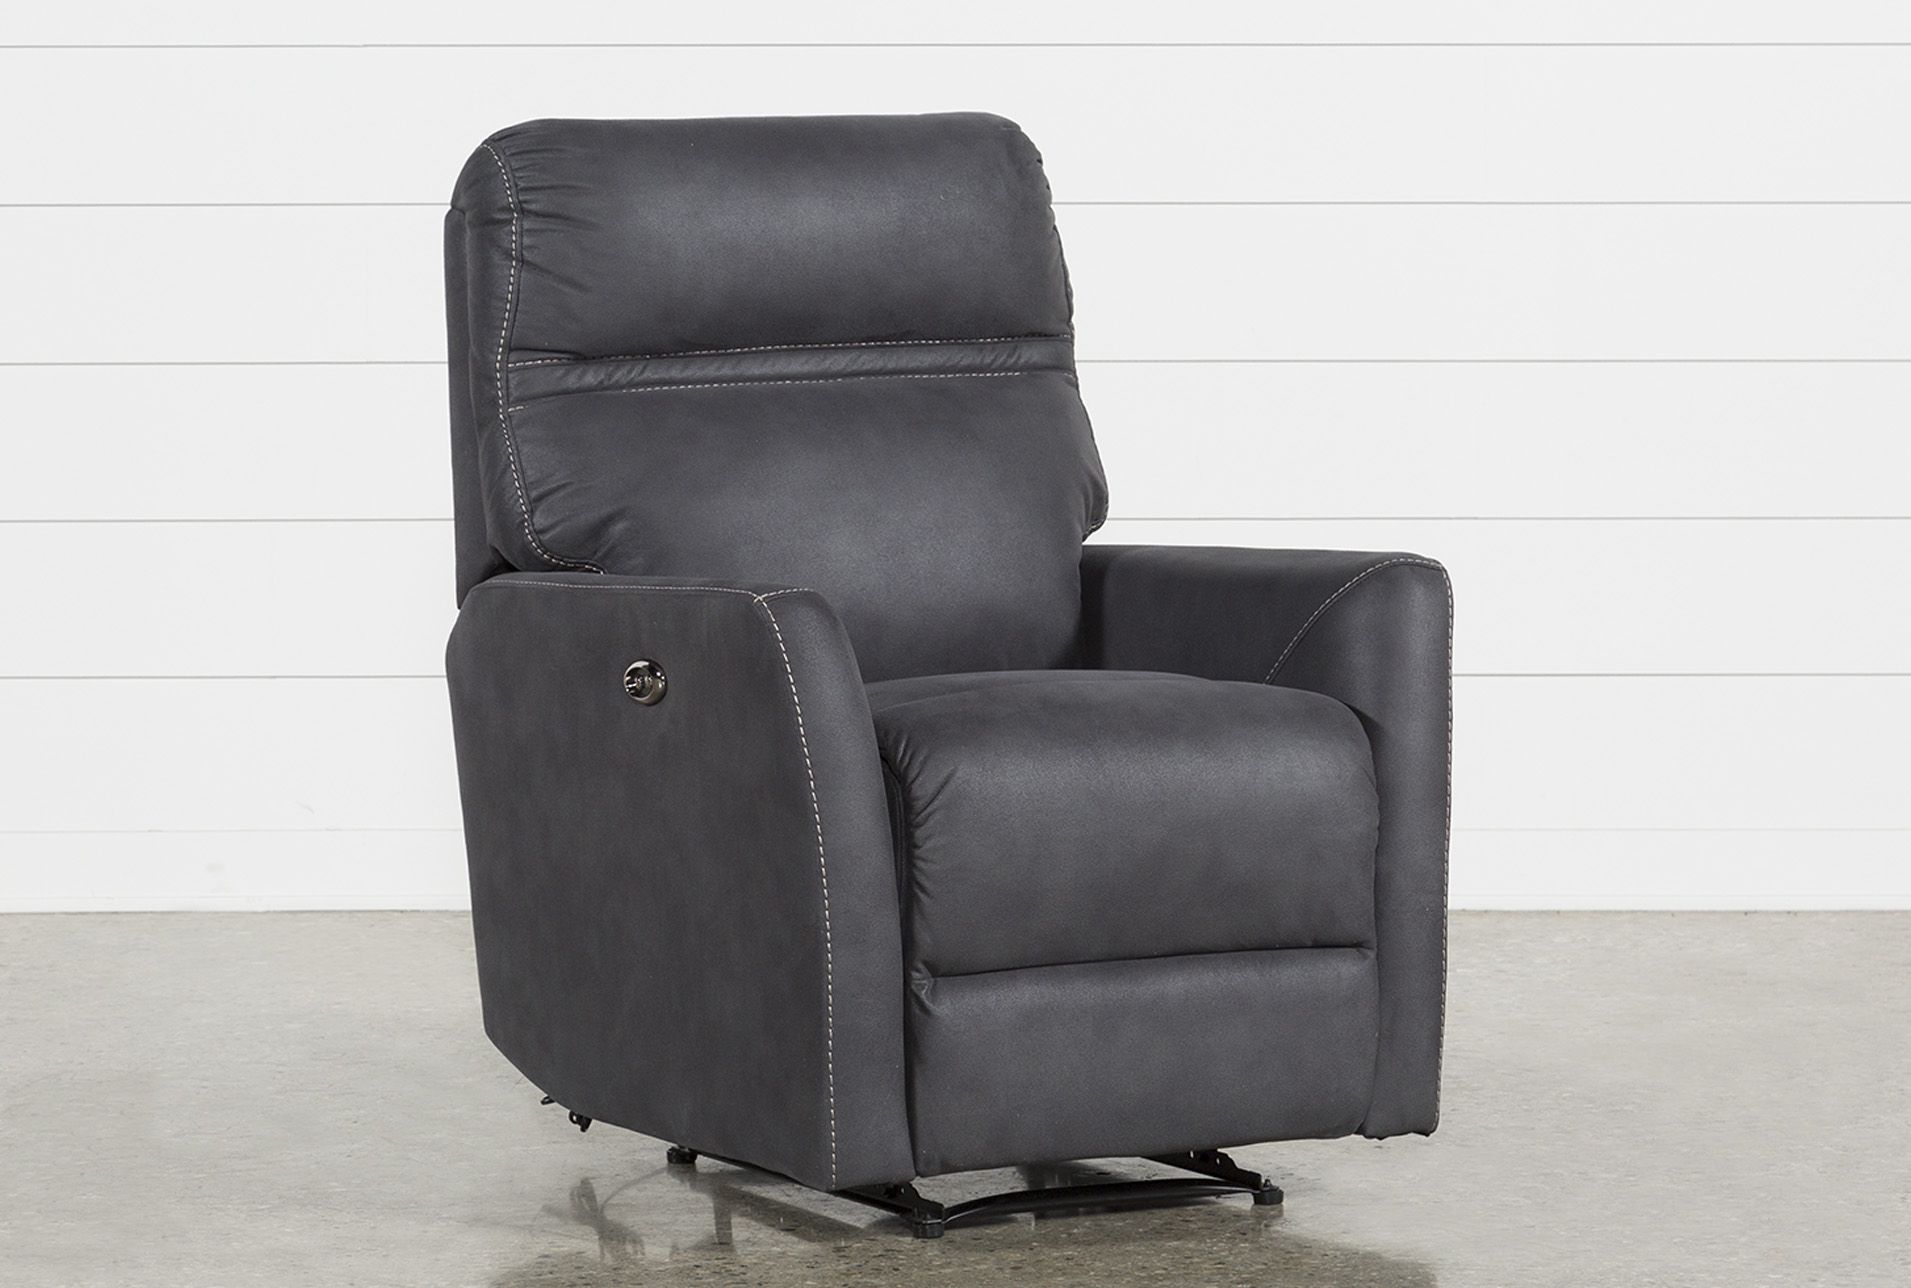 guy brown office chairs chair and table rentals near me recliners for your home living spaces siri dark grey power recliner